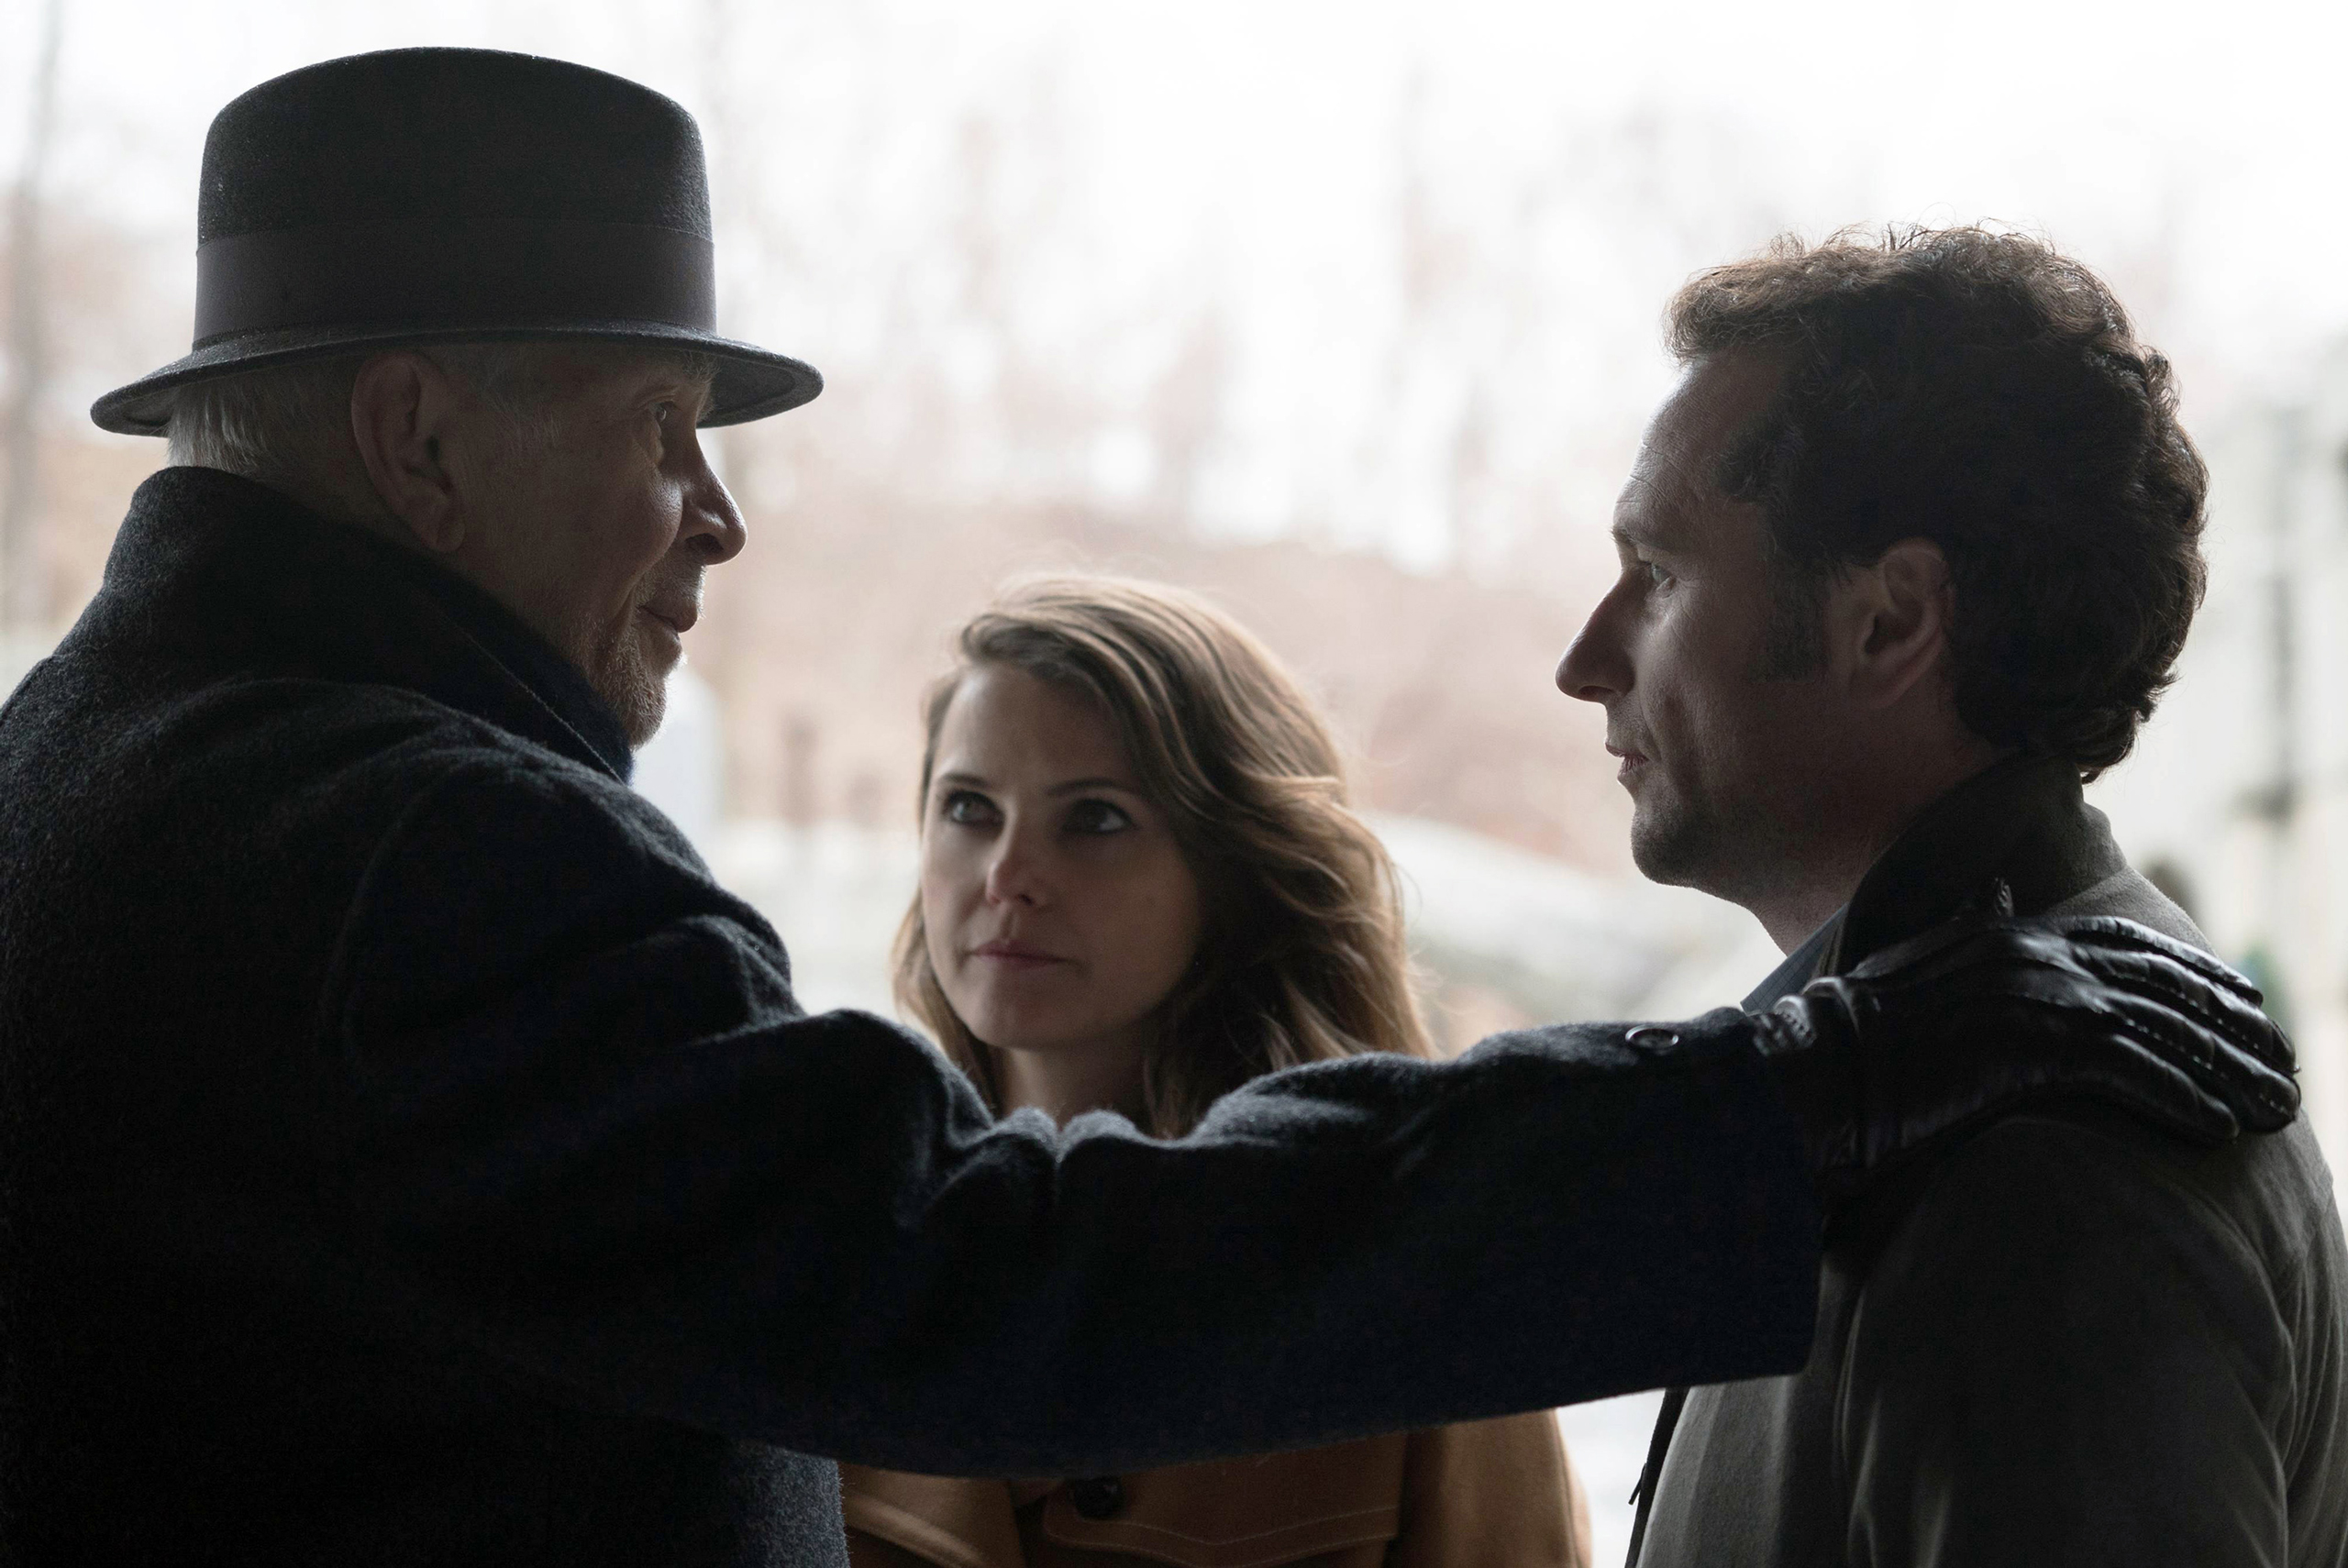 Frank Langella, Keri Russell and Matthew Rhys in the last episode of Season 4 of The Americans.